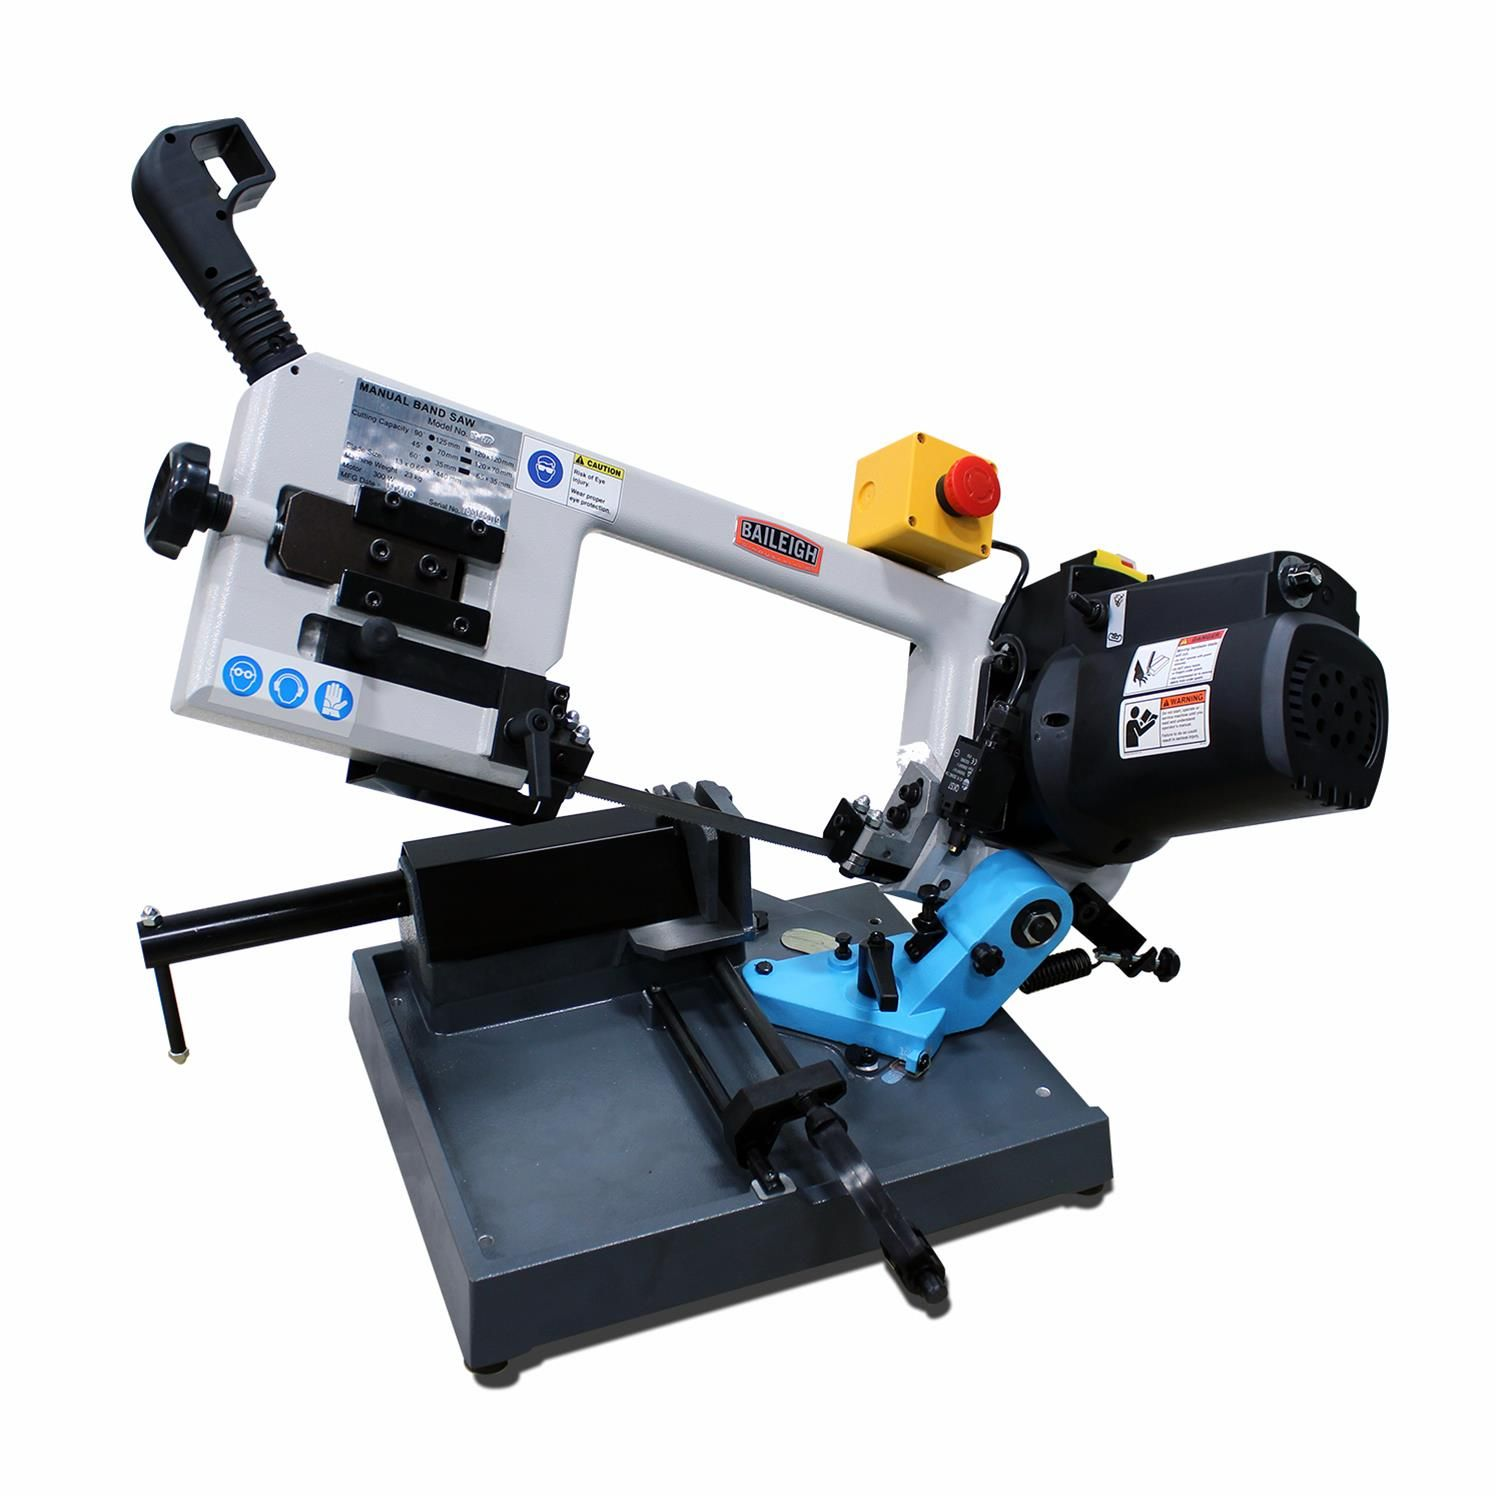 Find Baileigh Industrial Bs 127p Portable Band Saws Bs 127p Portable Band Saw Bandsaw Metal Band Saw